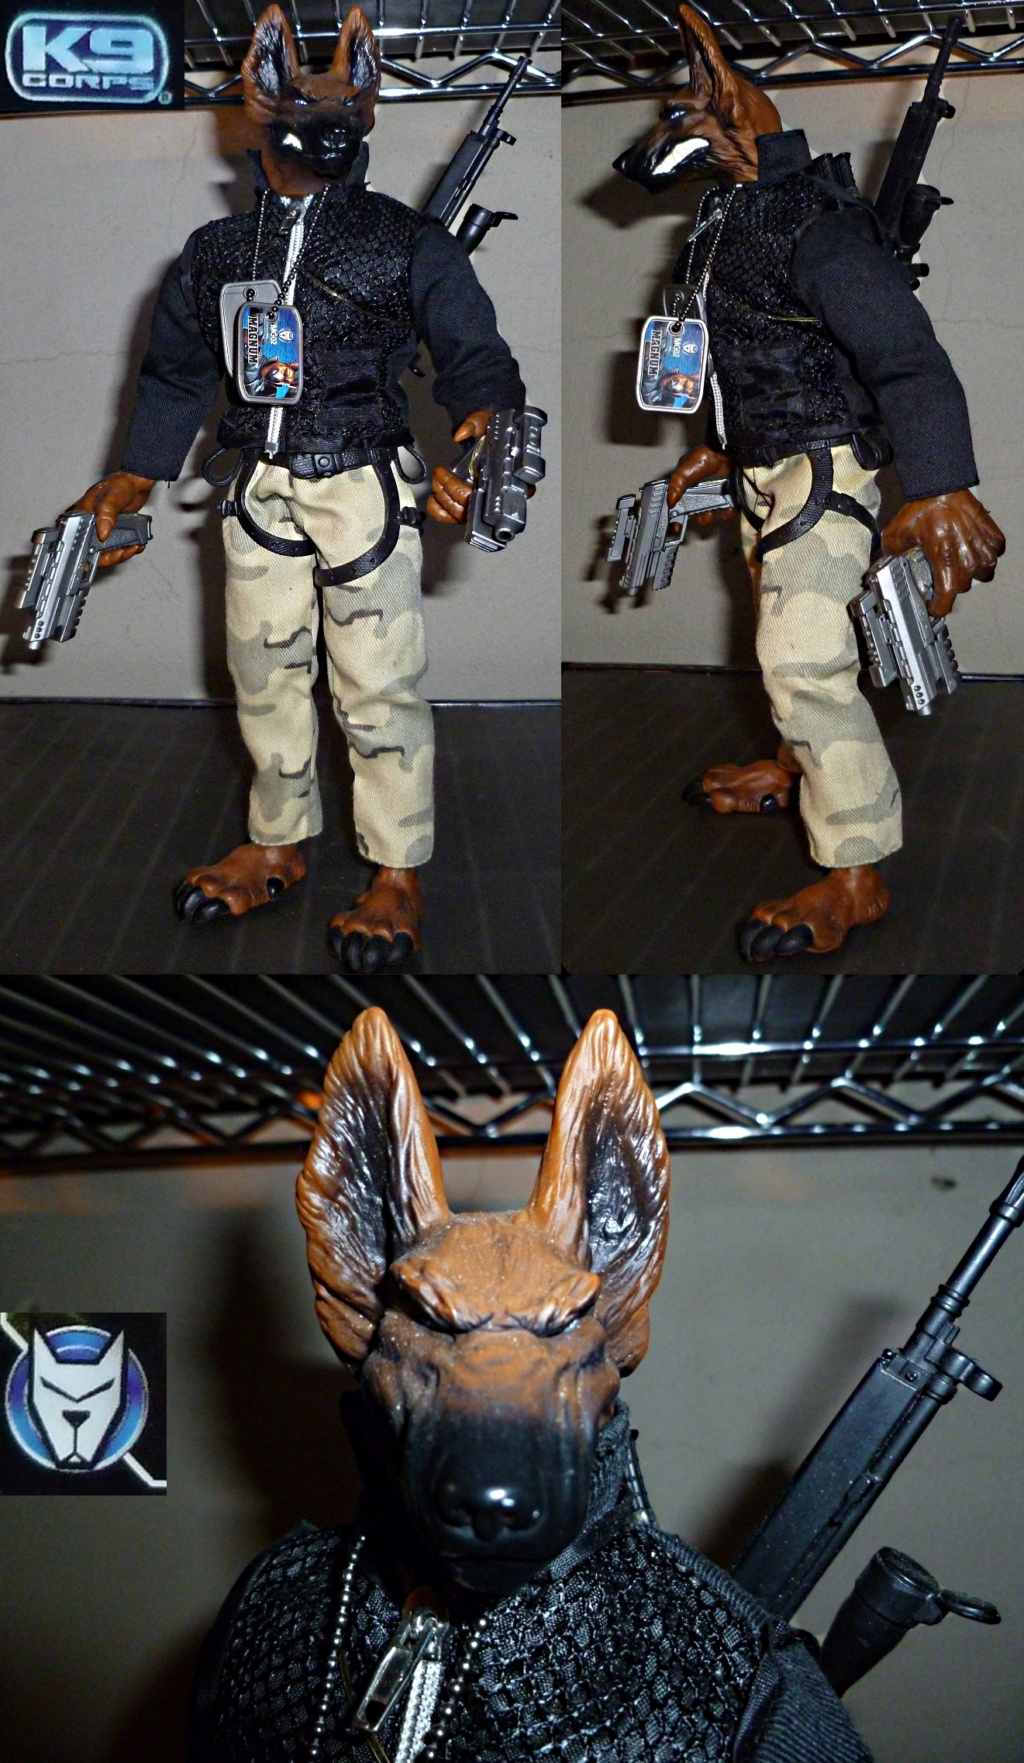 The K9 Corps: REBOOT Special! Magnum10